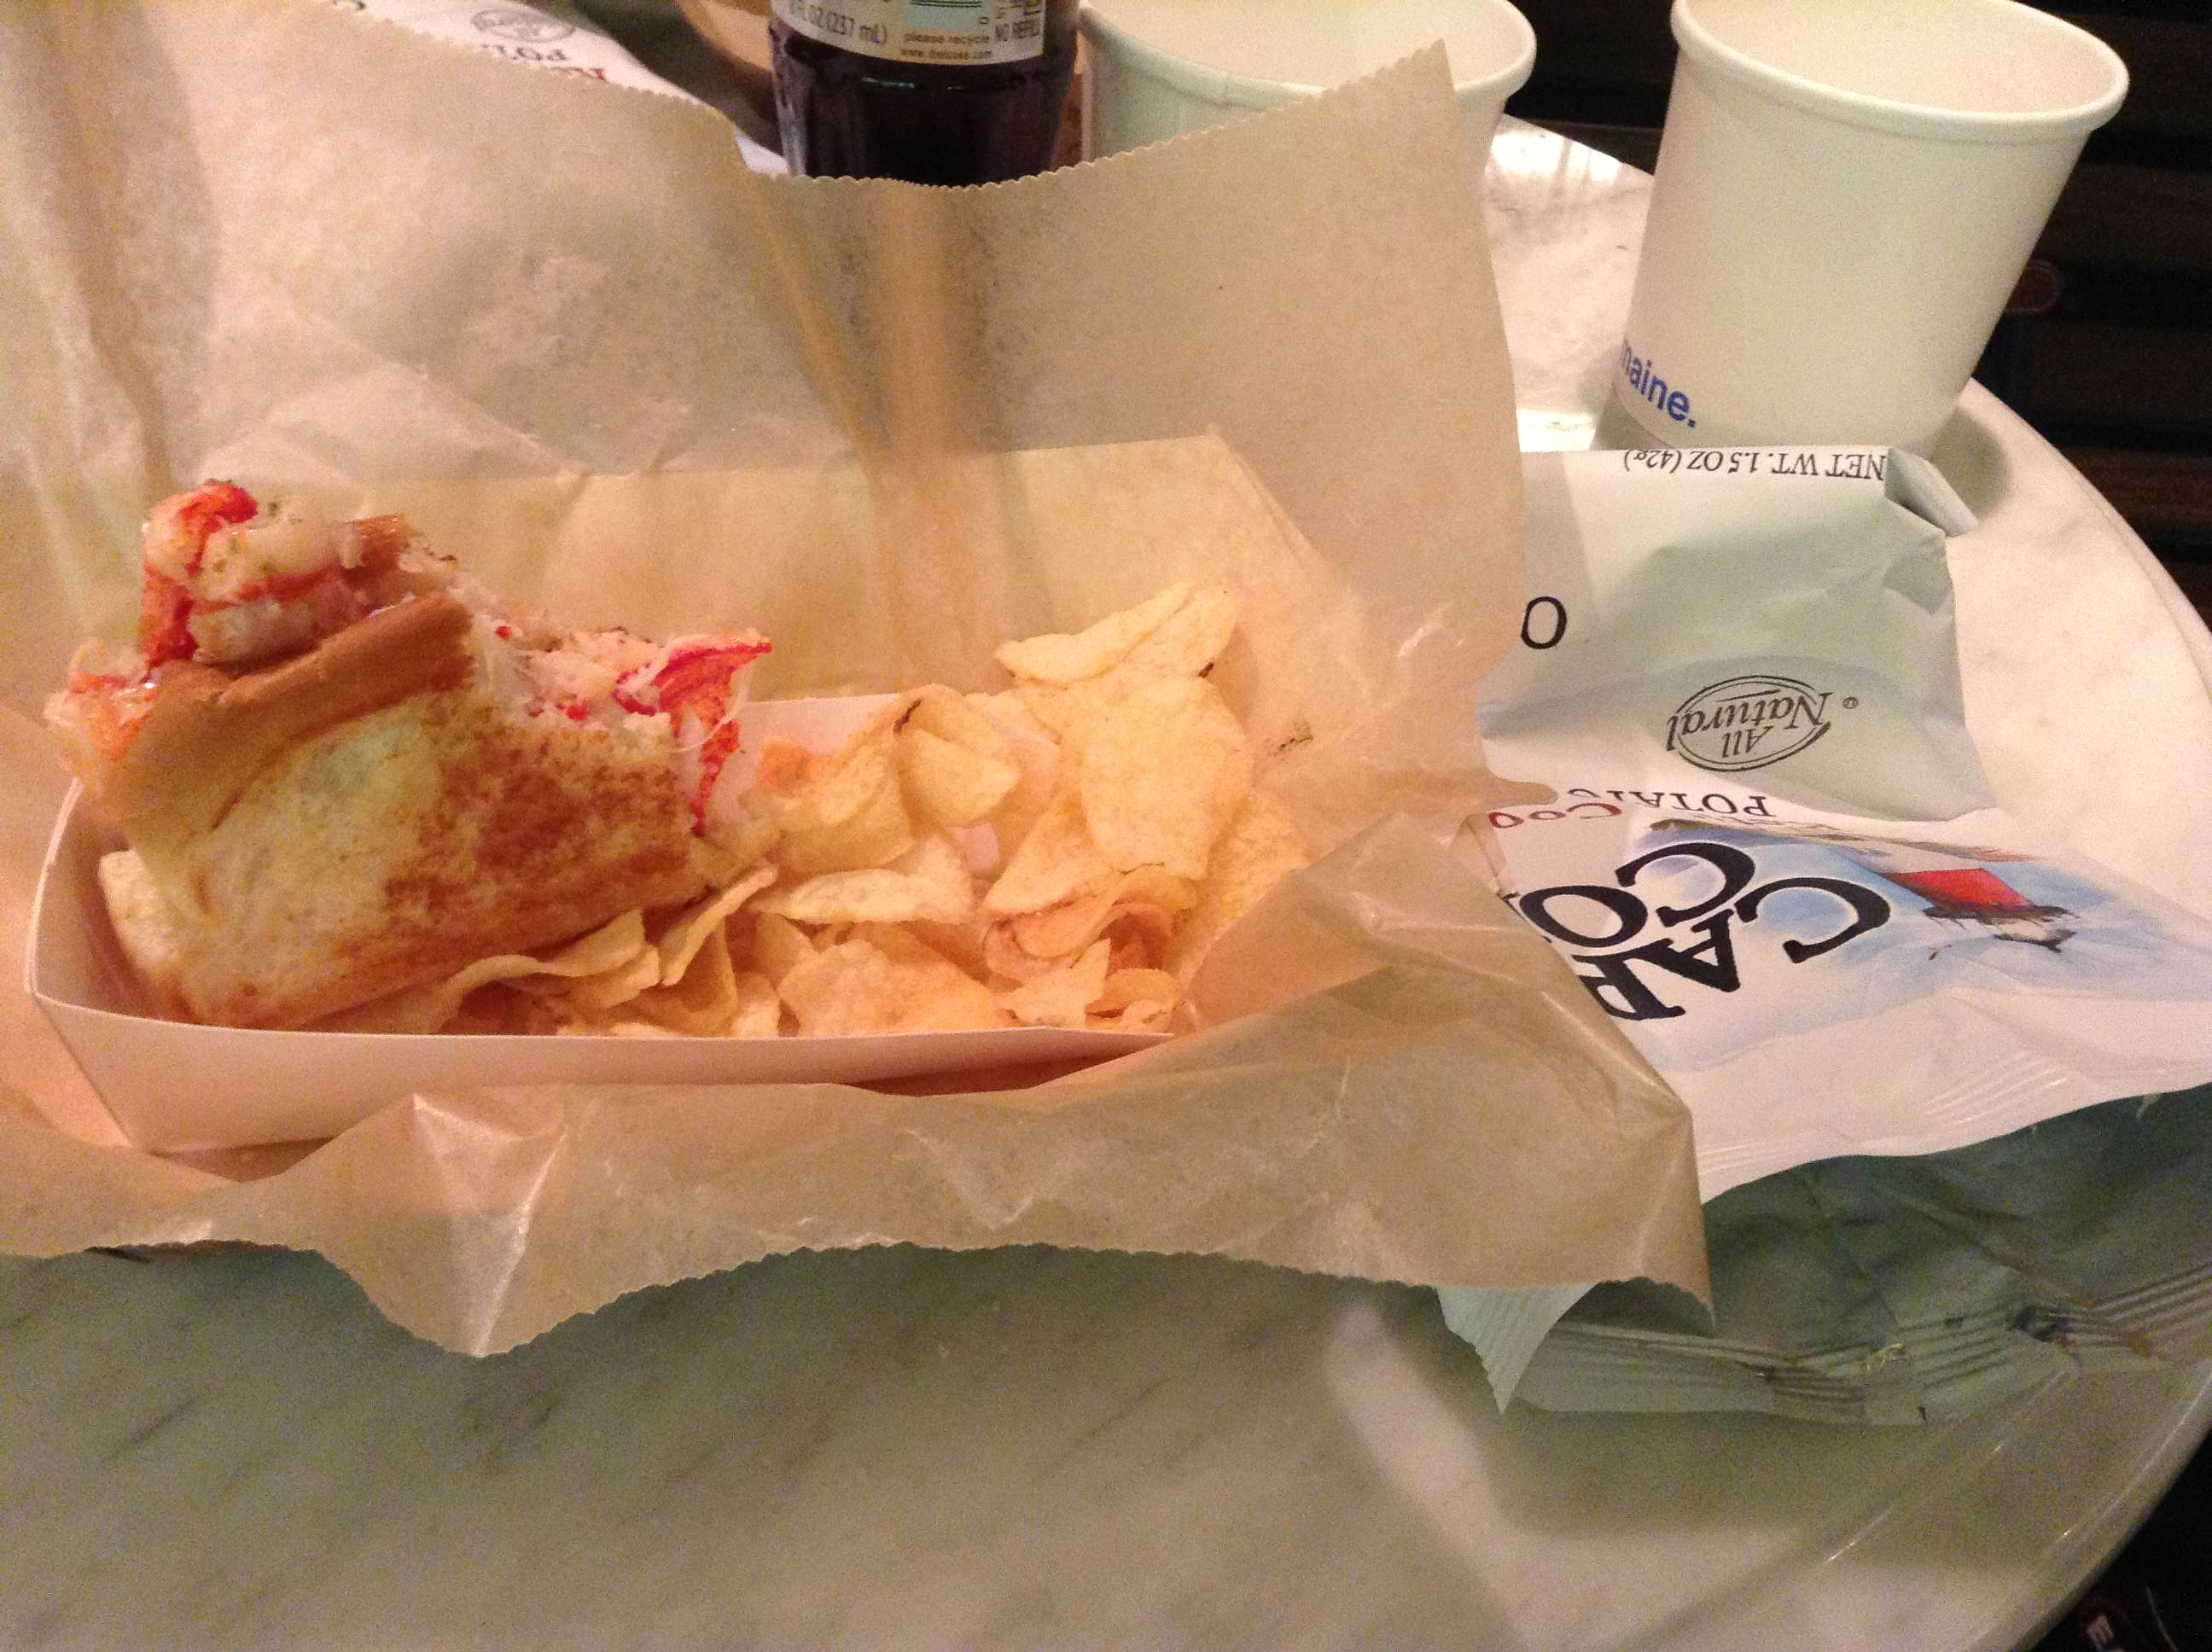 Lukes-Lobster-New-York Mon avis sur le hot dog au homard de Luke's Lobster New York